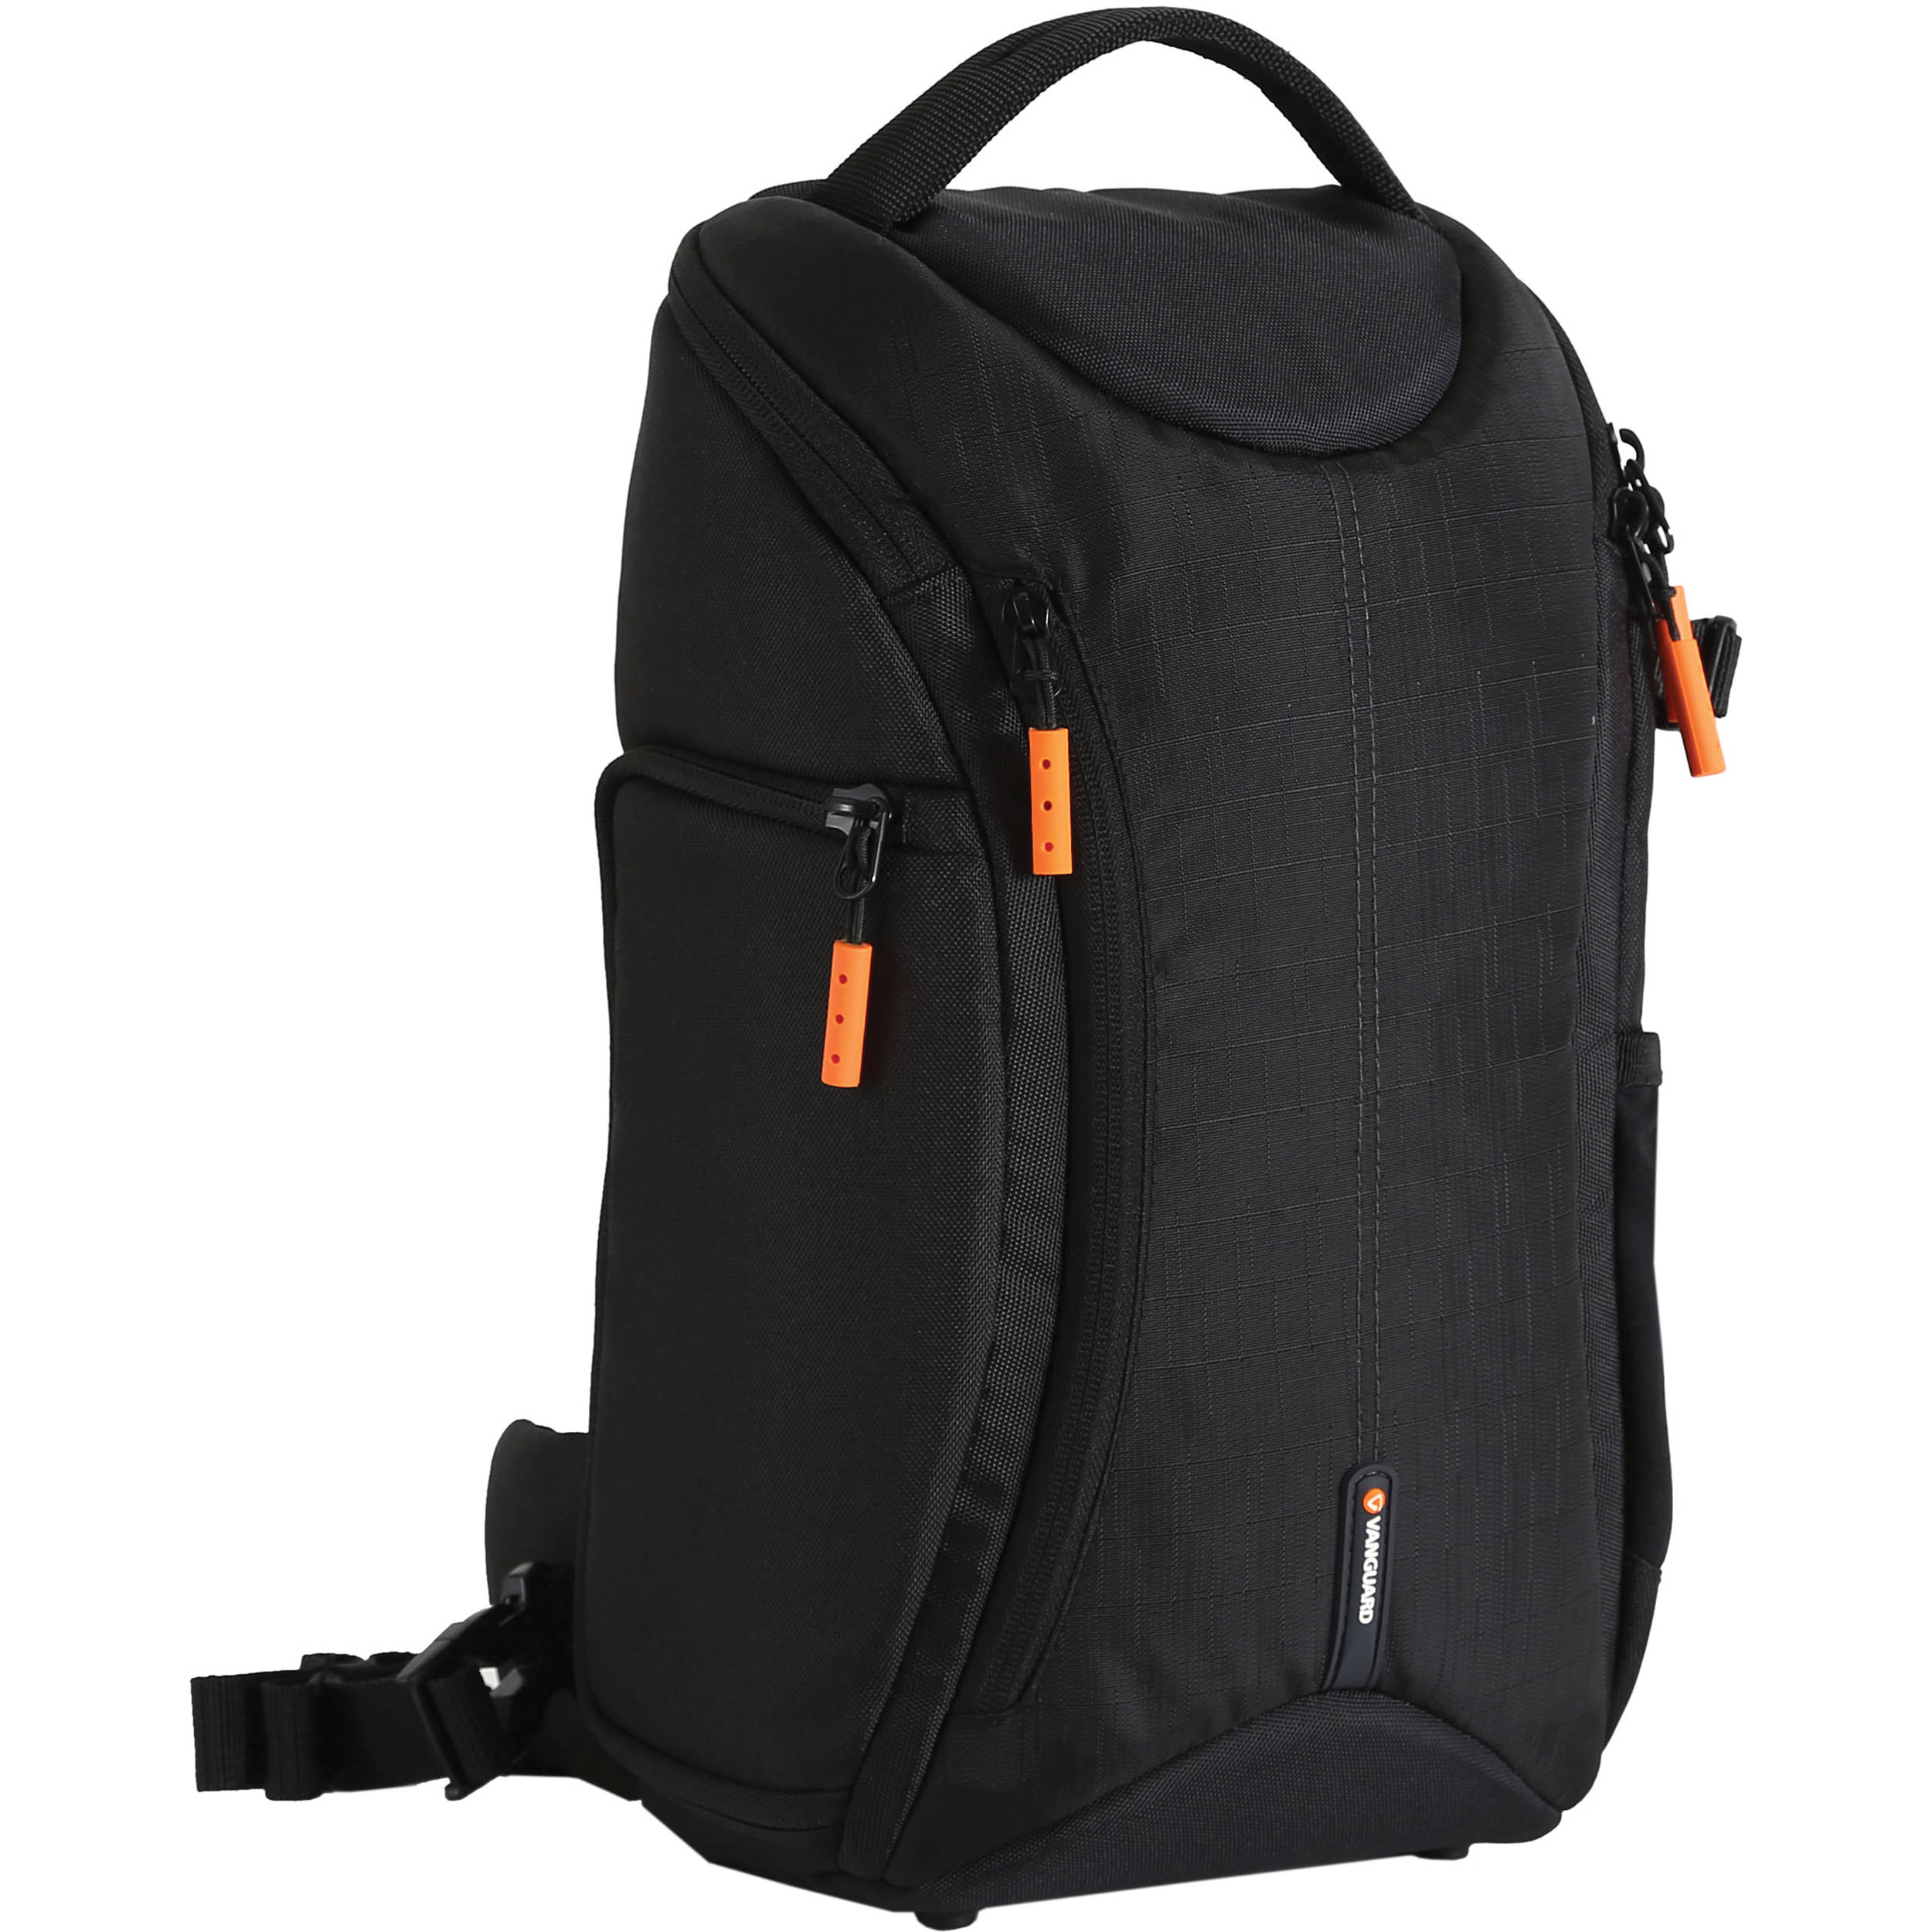 Vanguard Oslo 47 Sling Bag (Black) OSLO 47BK B&H Photo Video